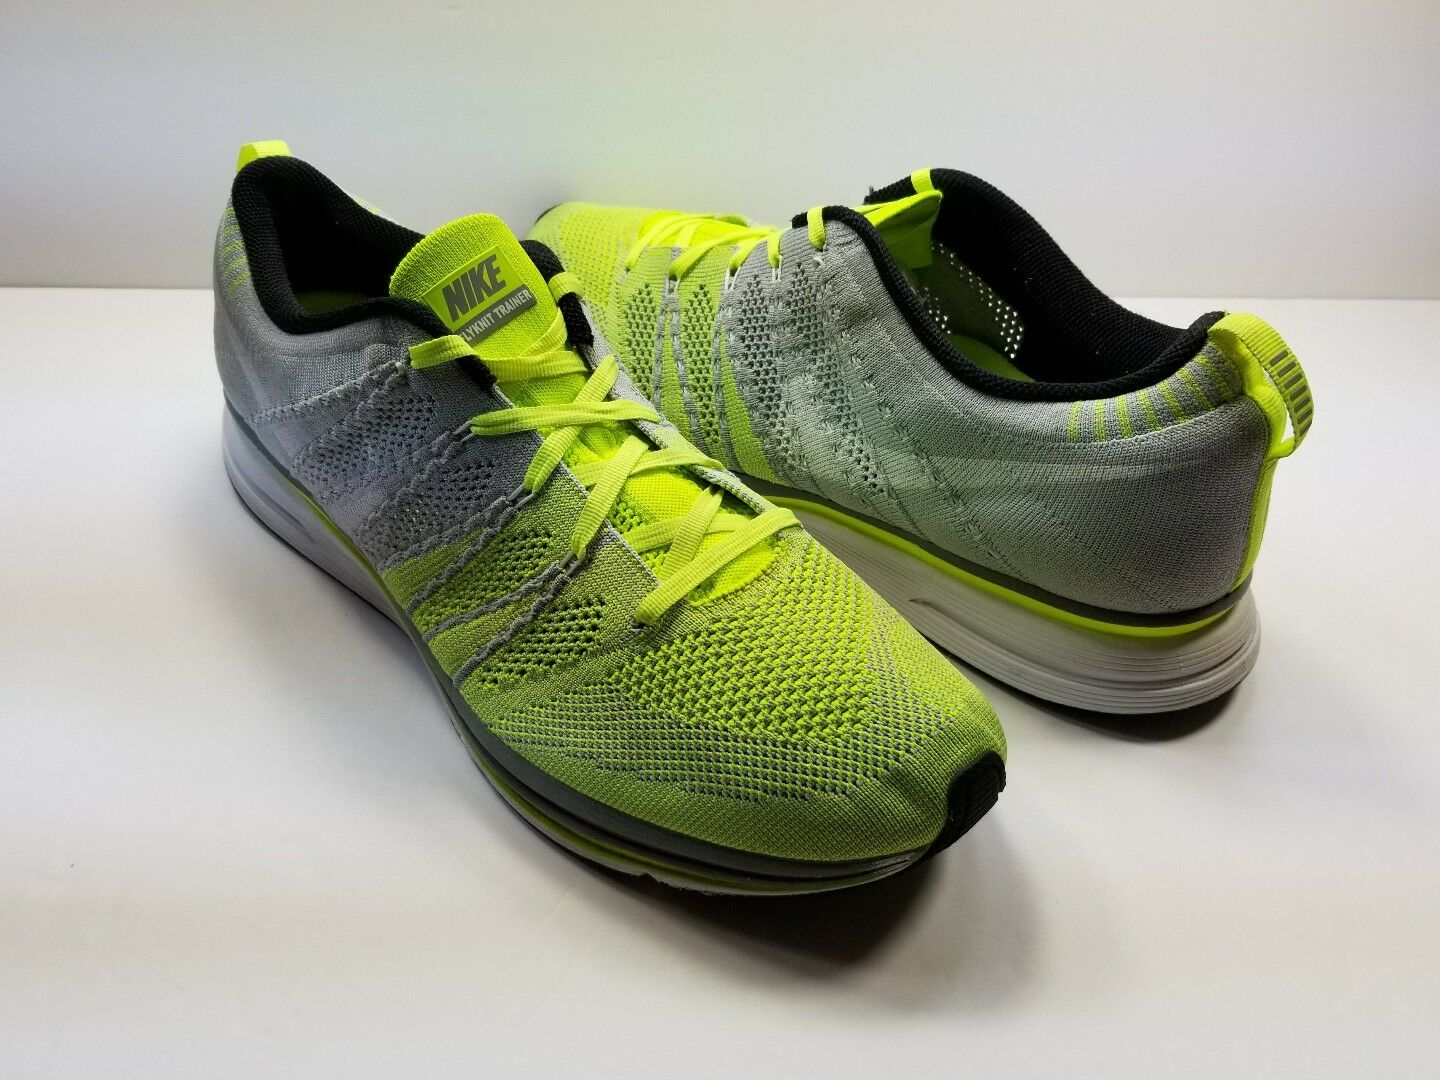 cc1b833f01e NIKE FLYKNIT TRAINER+ GRAY GREEN 532984-714 532984-714 532984-714 - Size 13  d25d12